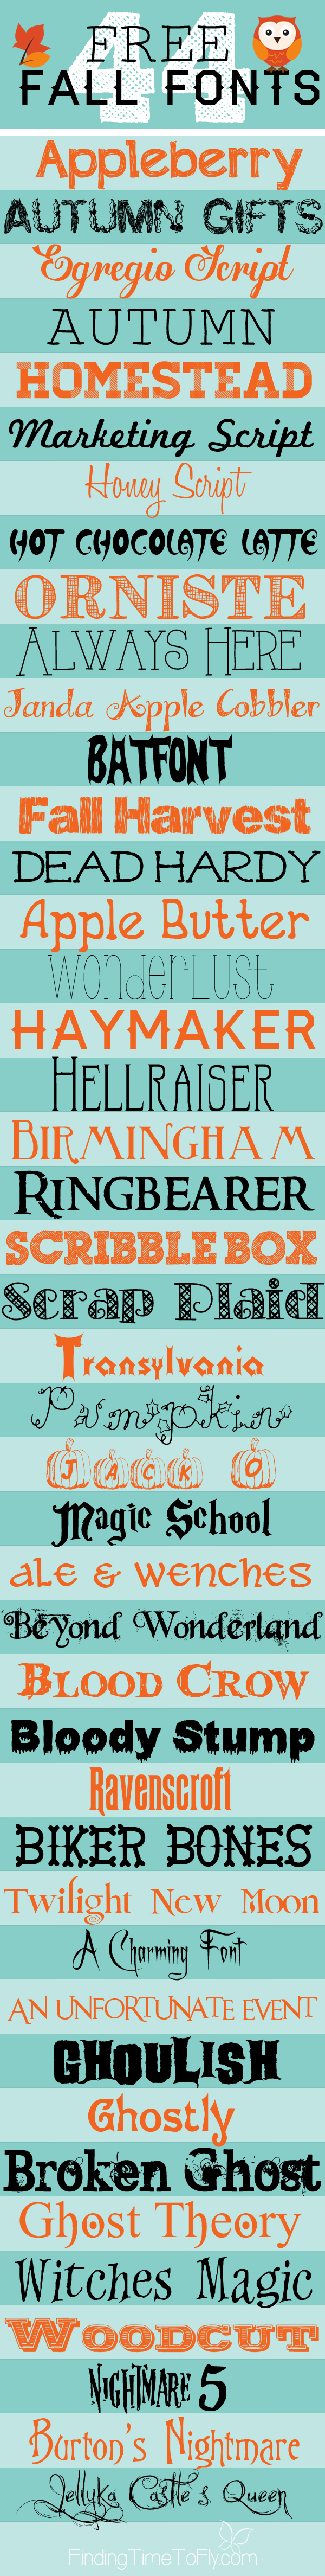 Wow! So many free fall fonts! There's even a printable reference sheet you can print.